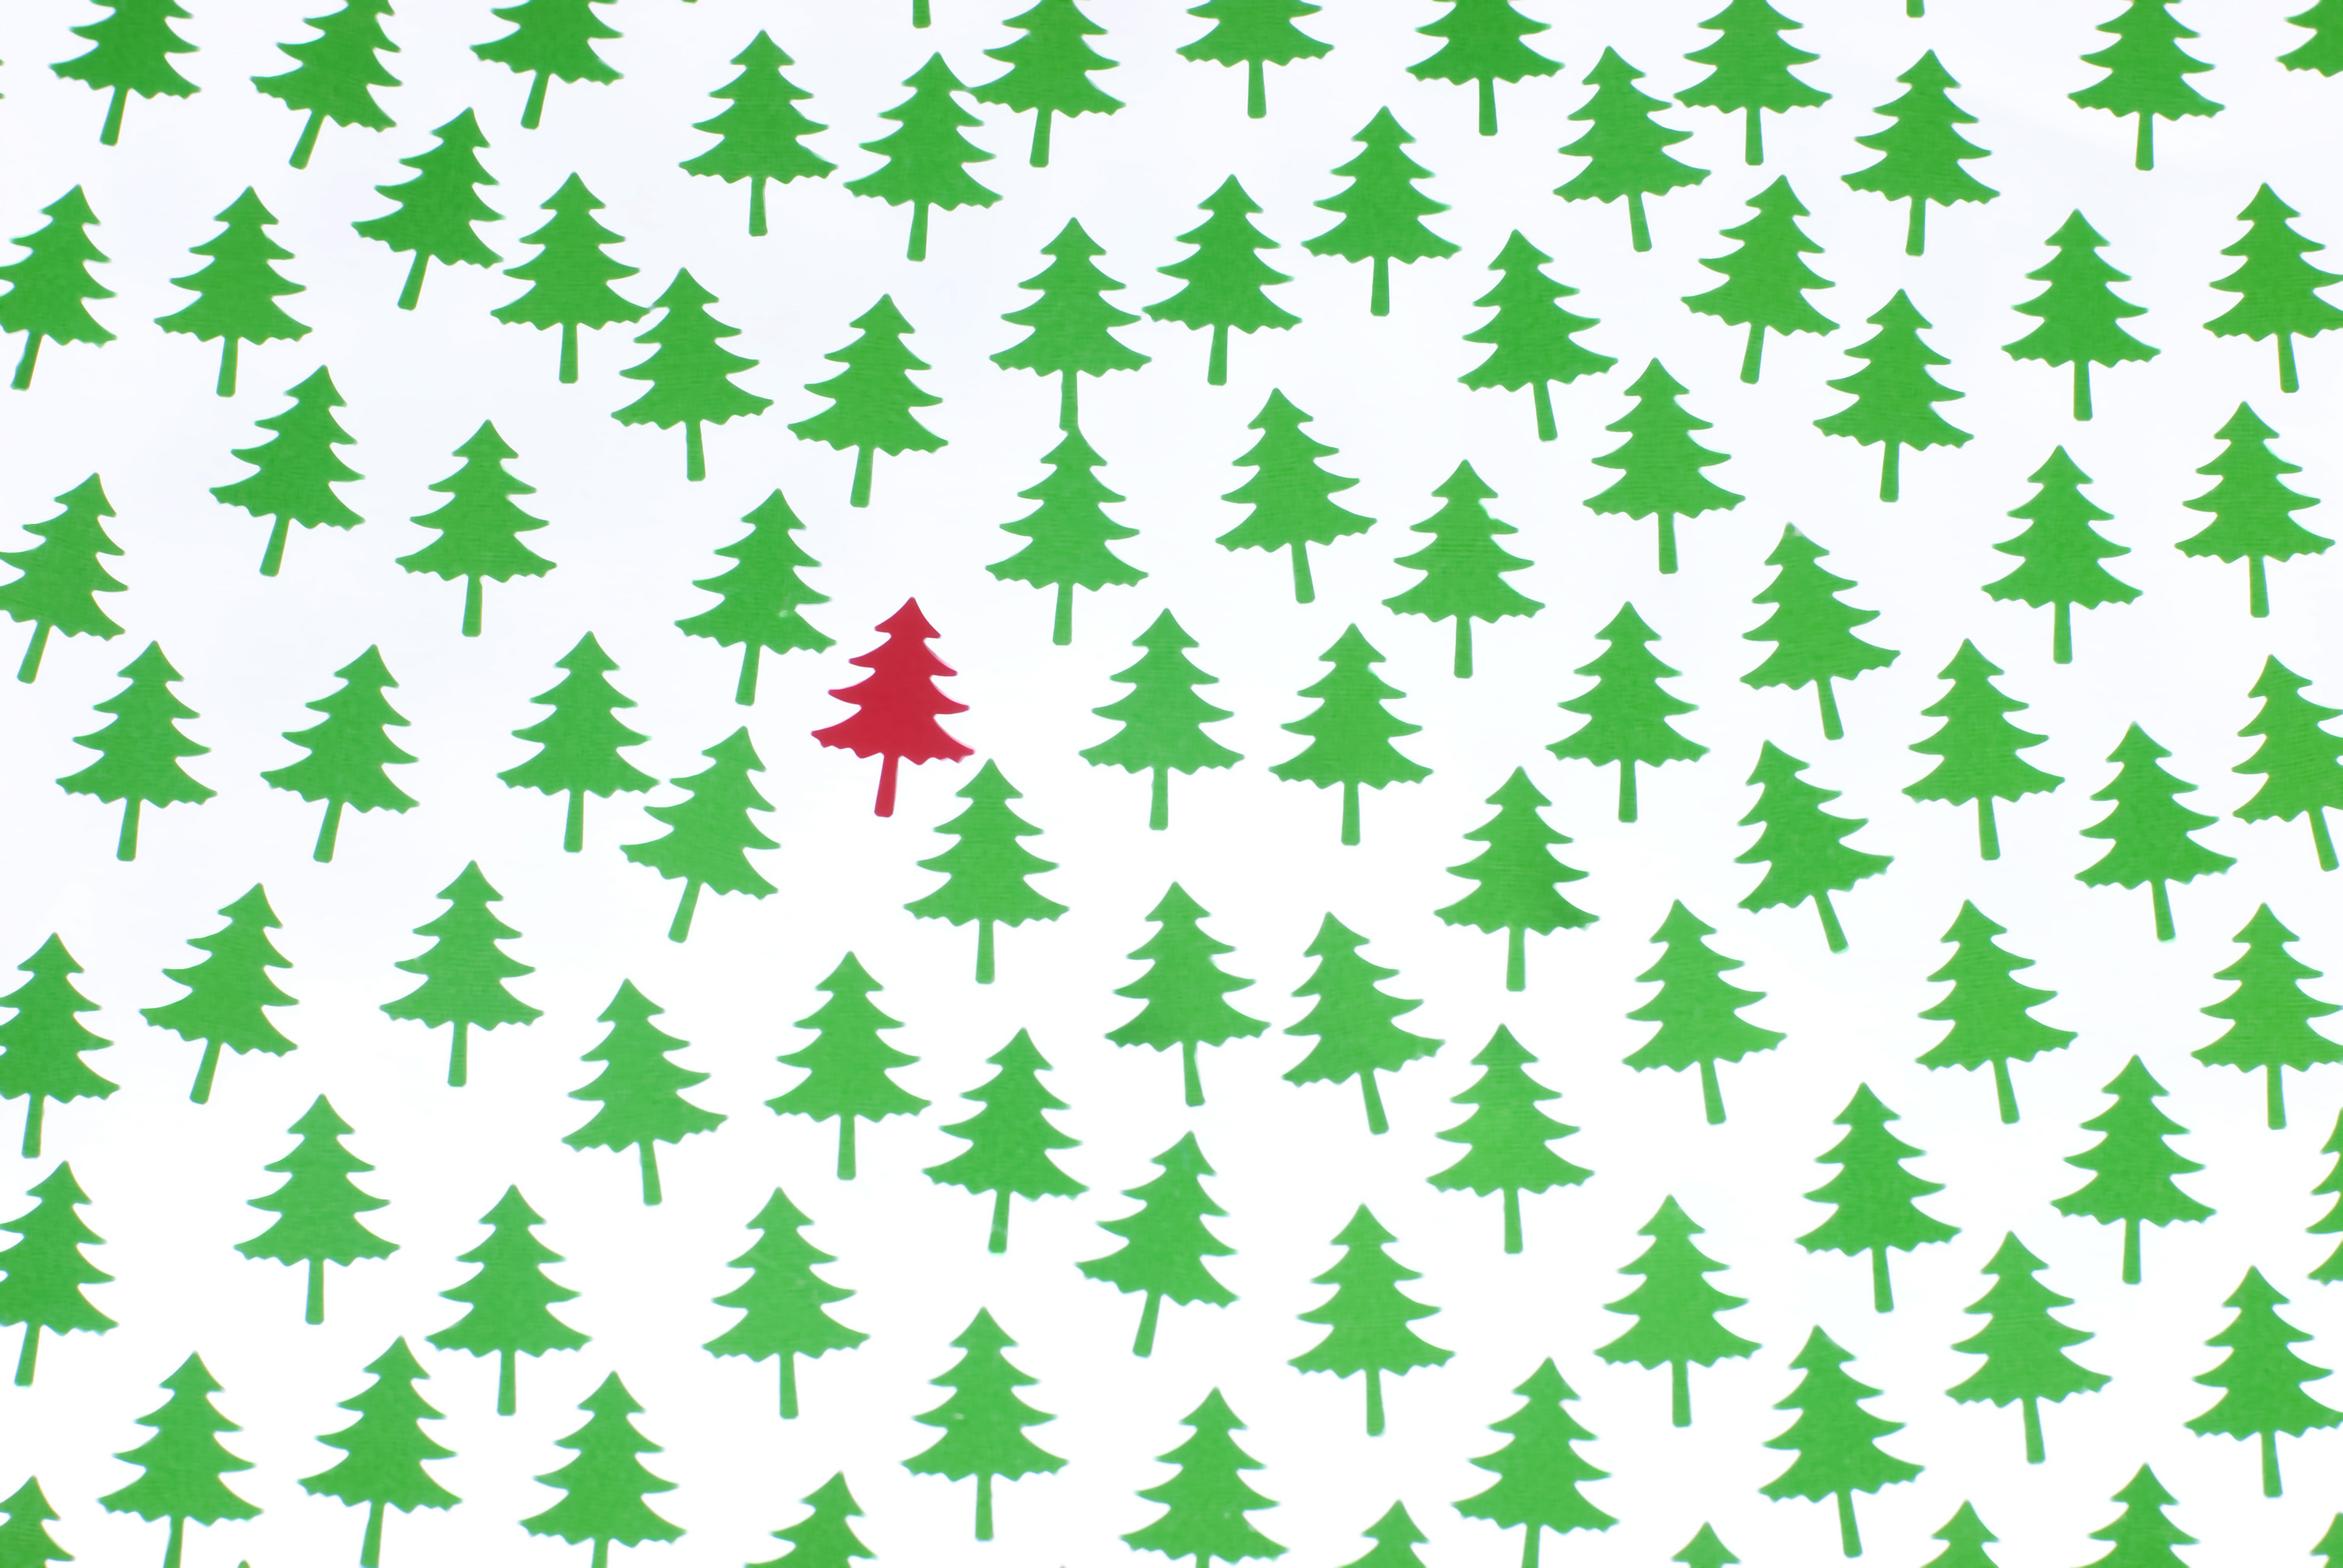 a background of green pine tree shapes with a single red tree standing out